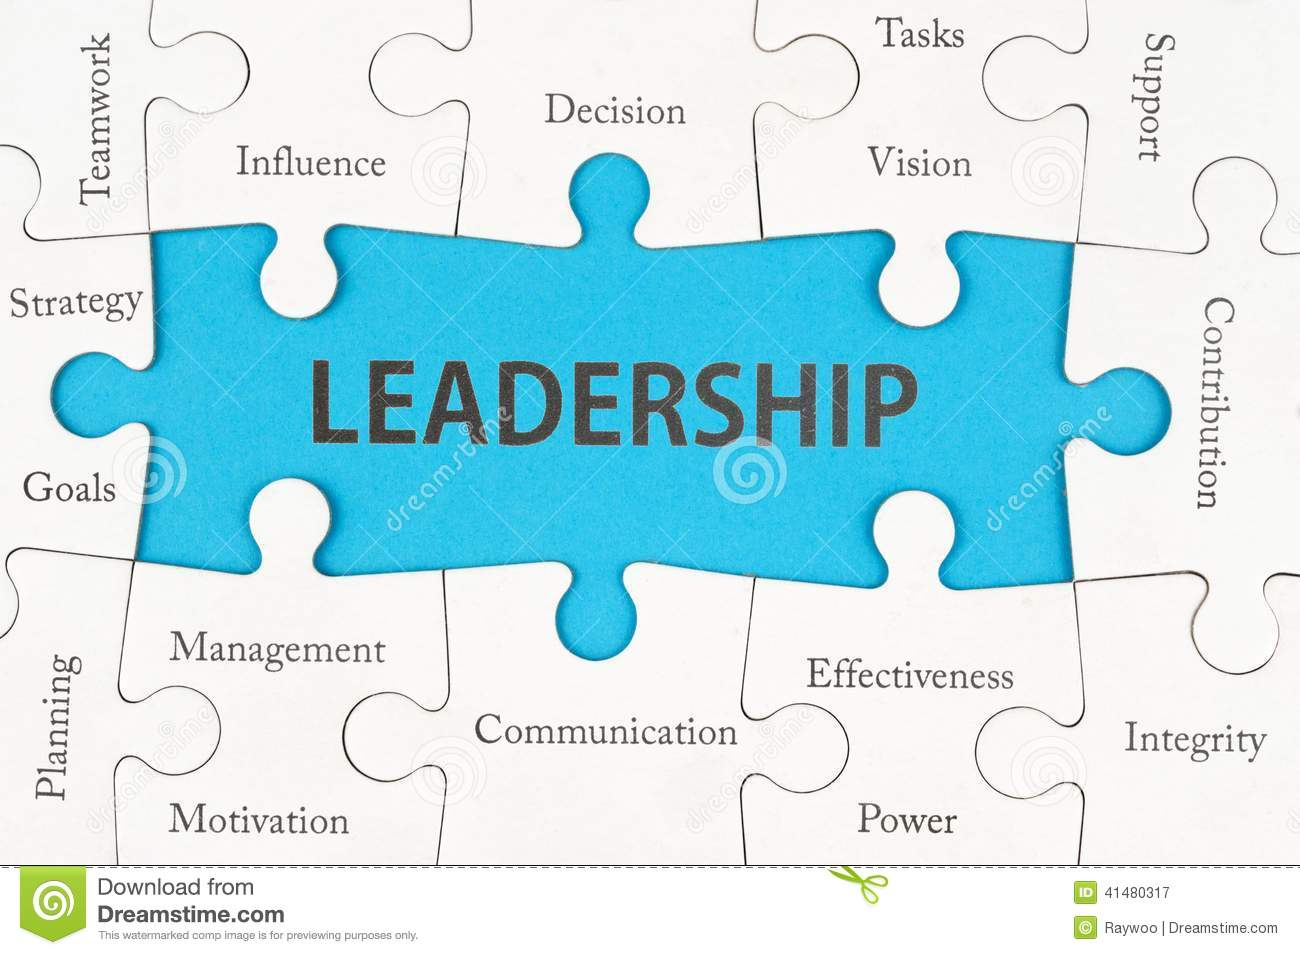 Five concepts of leadership